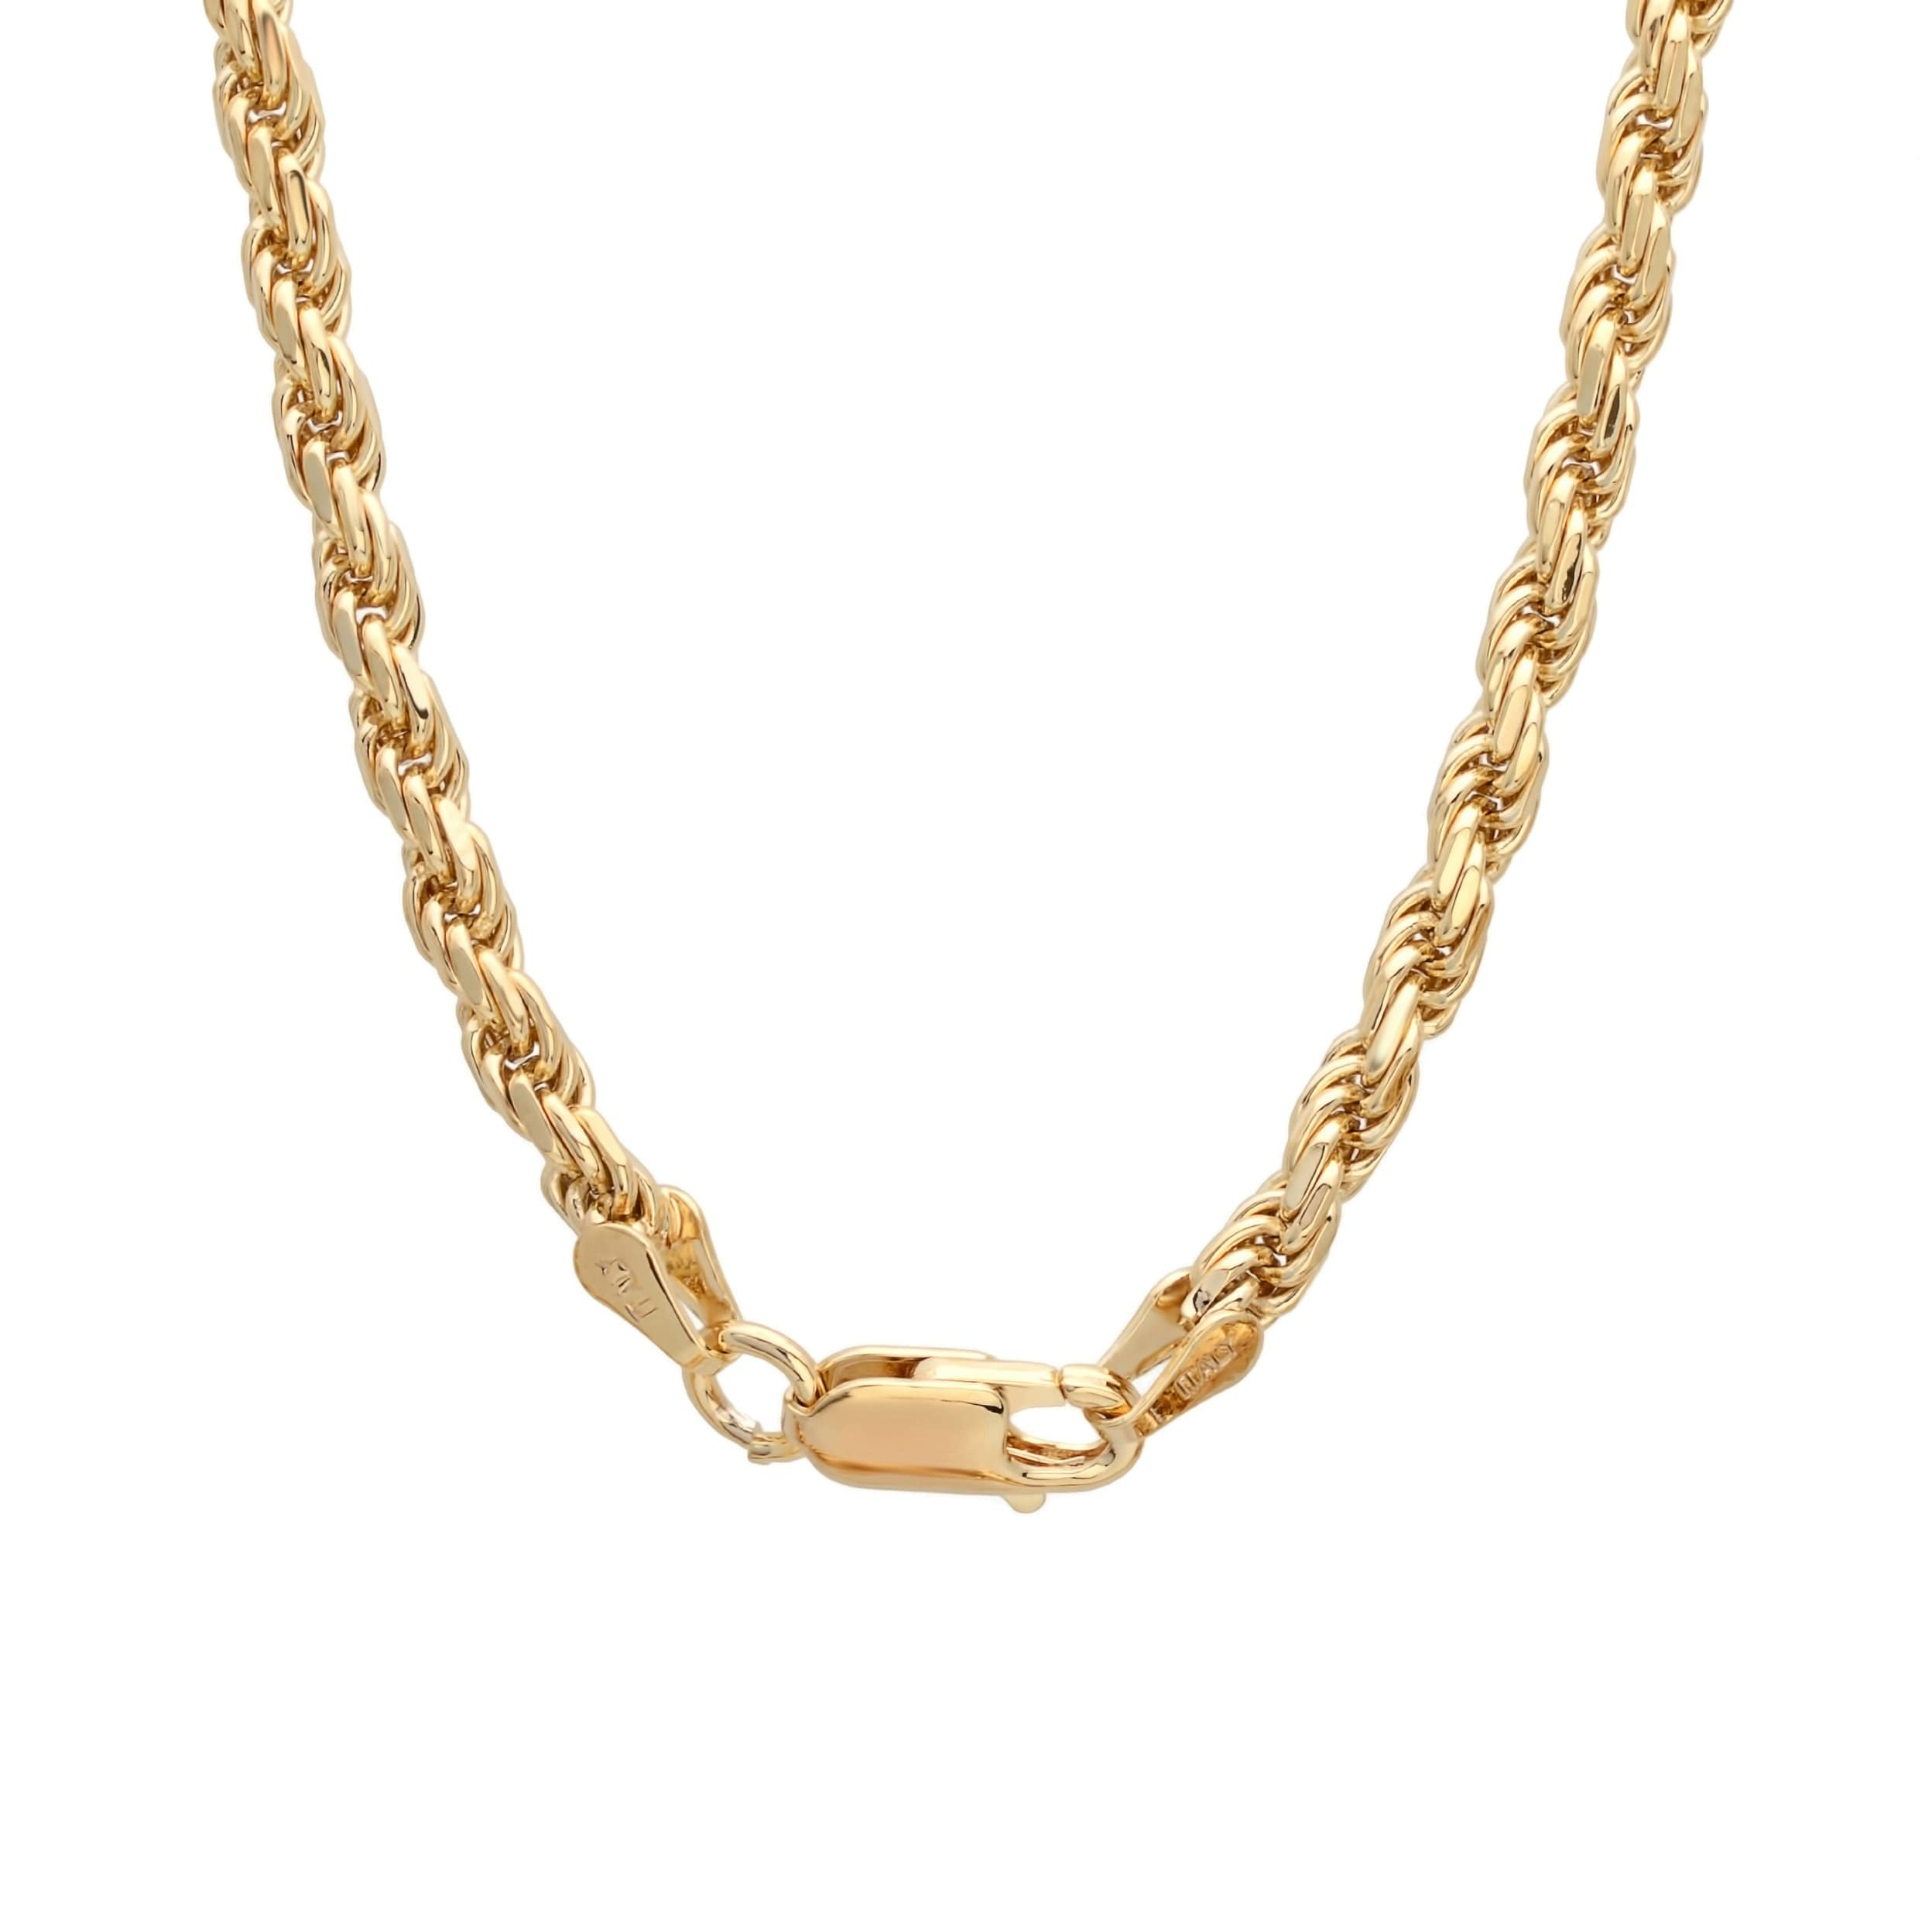 be712fa901c62 Yellow Gold Plated Silver 3 mm Diamond-cut Rope Chain (18-30 Inch)